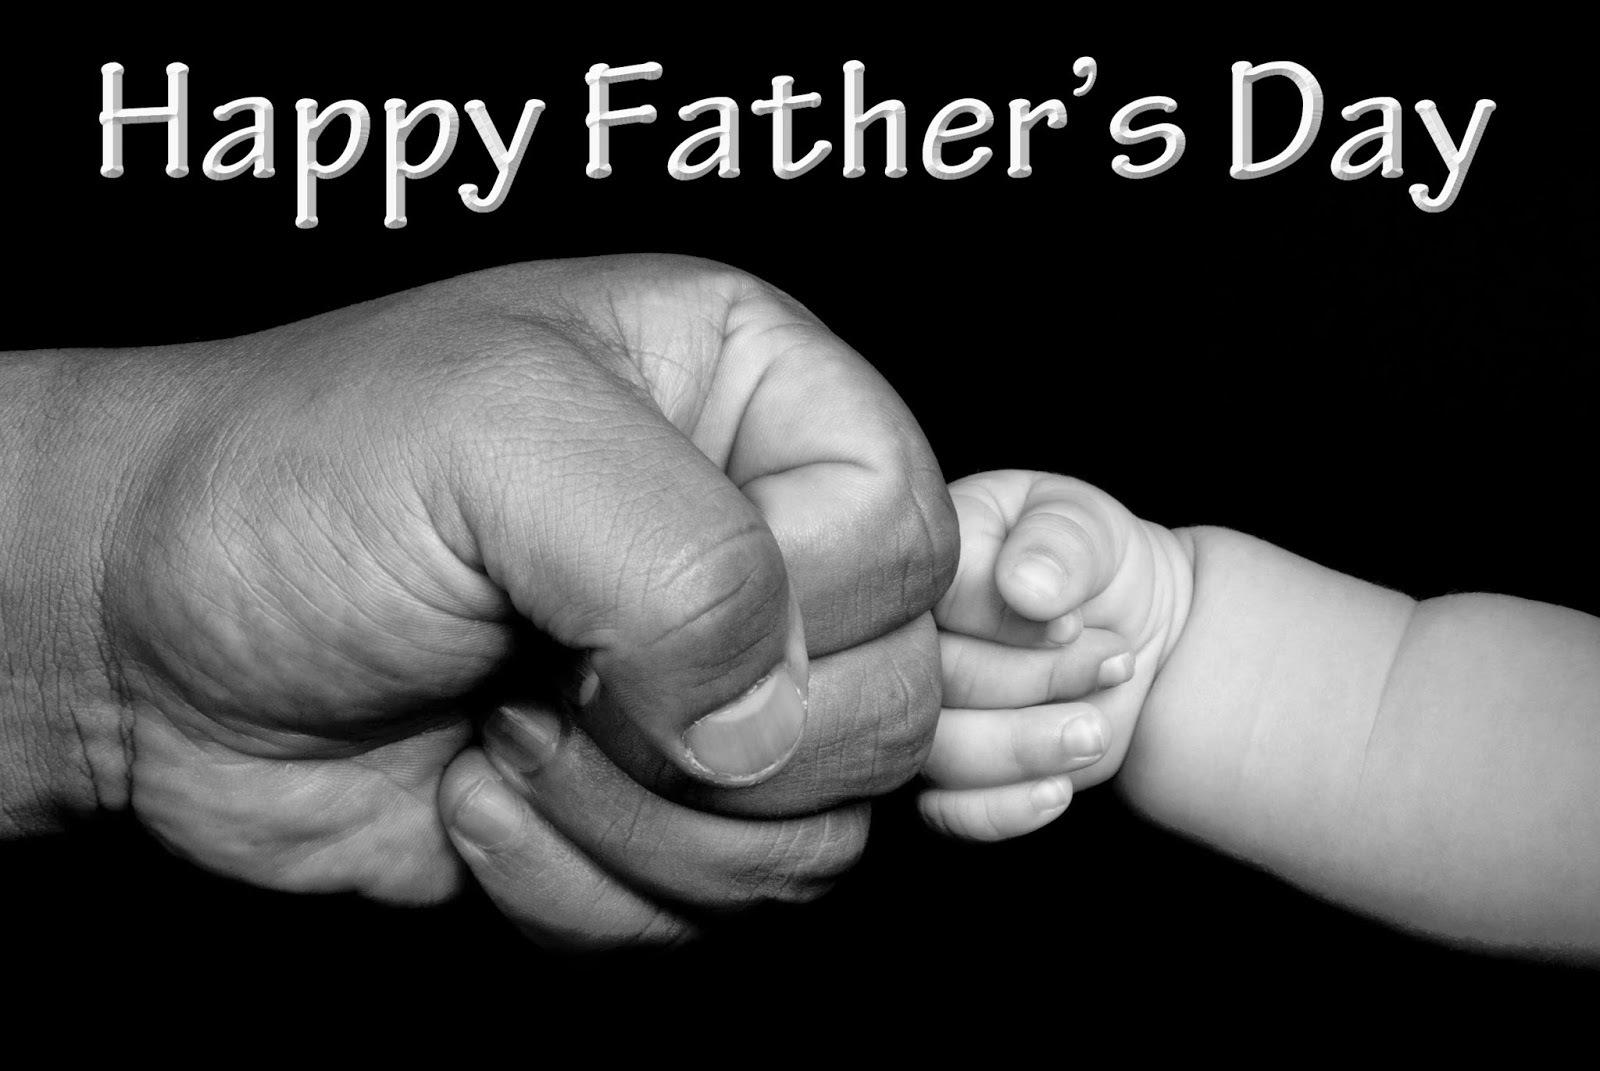 Fathers Day HD Wallpaper Stacy Cox